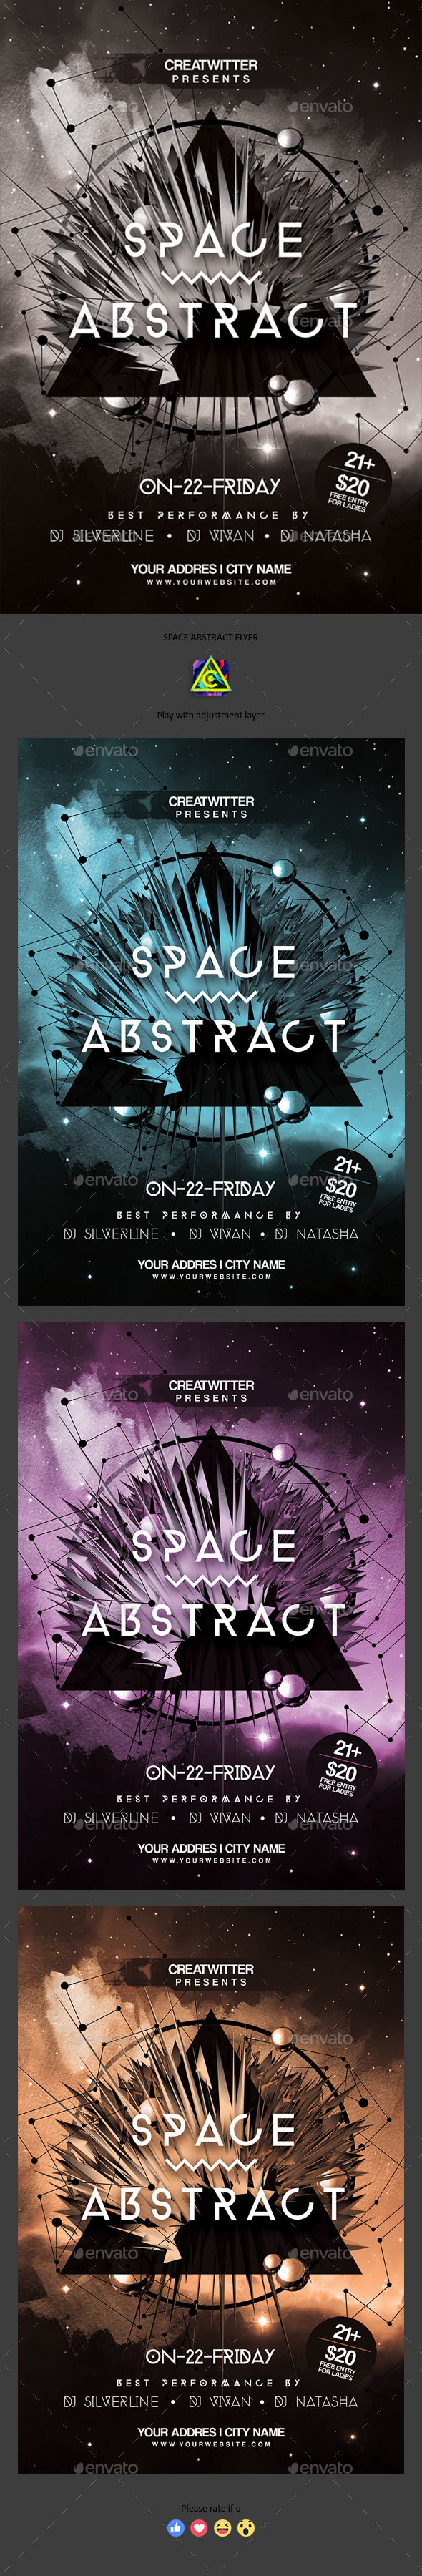 Space Abstract Flyer - Clubs & Parties Events